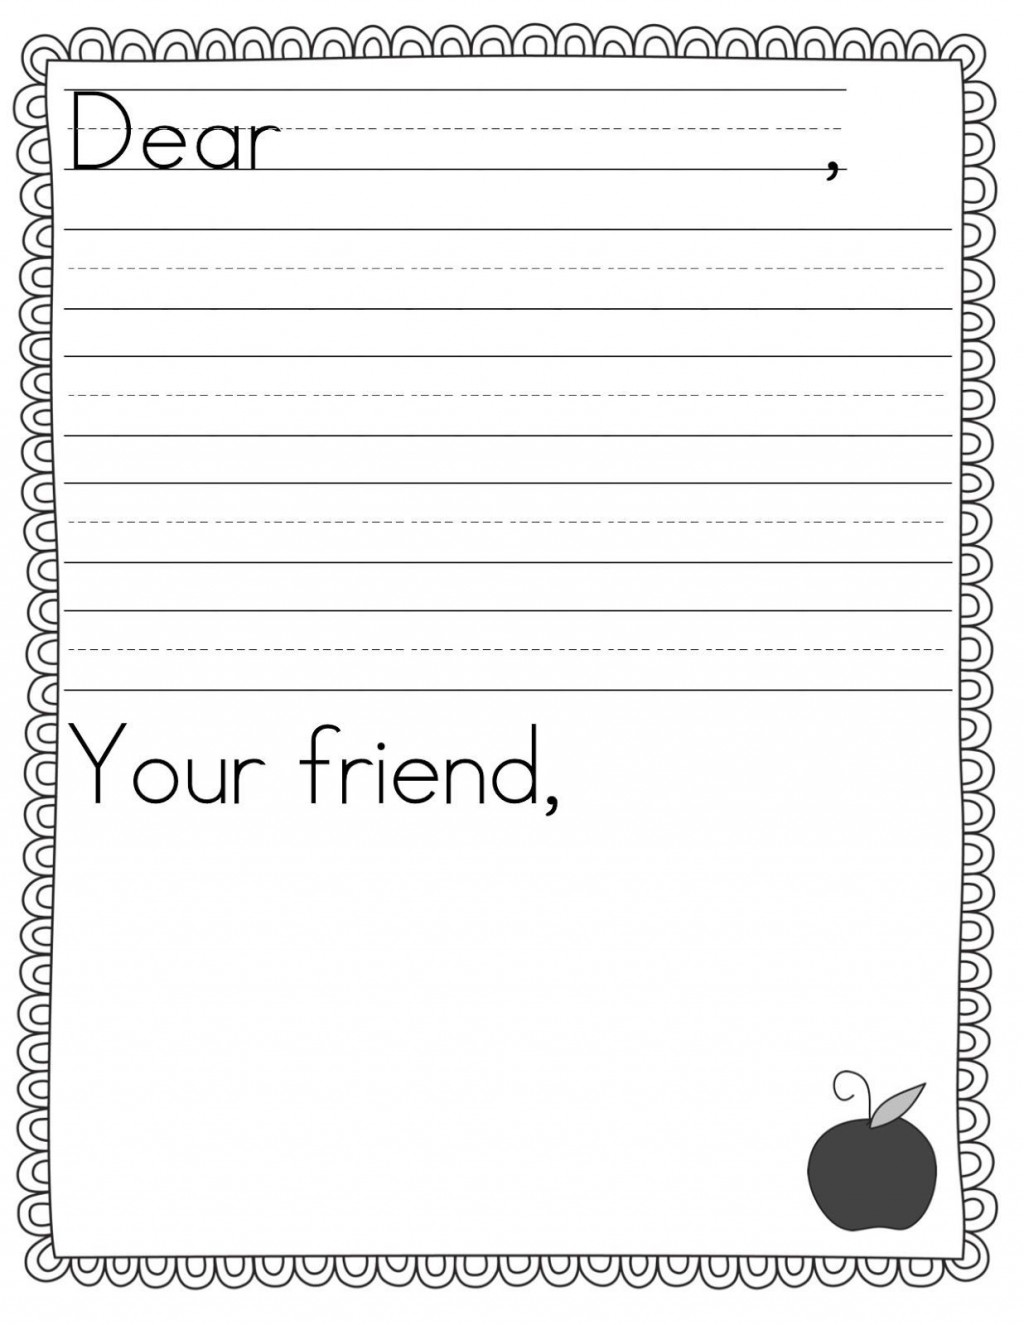 001 Simple Free Letter Writing Template 2nd Grade Image Large